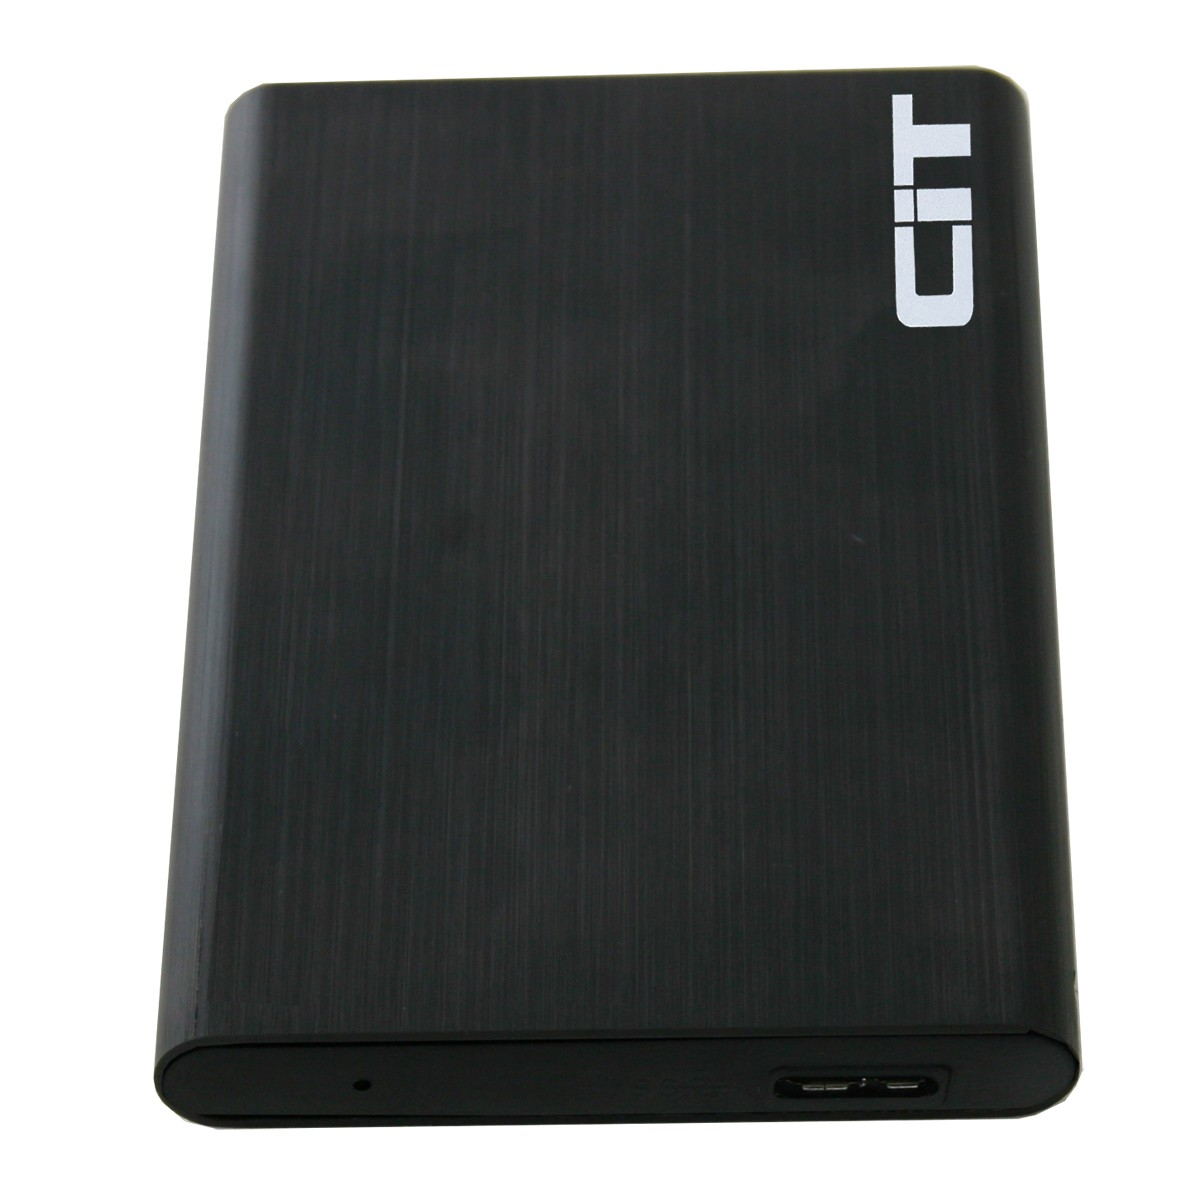 500GB High Speed USB 3.0 External HDD Portable Mobile Hard Drive Disc